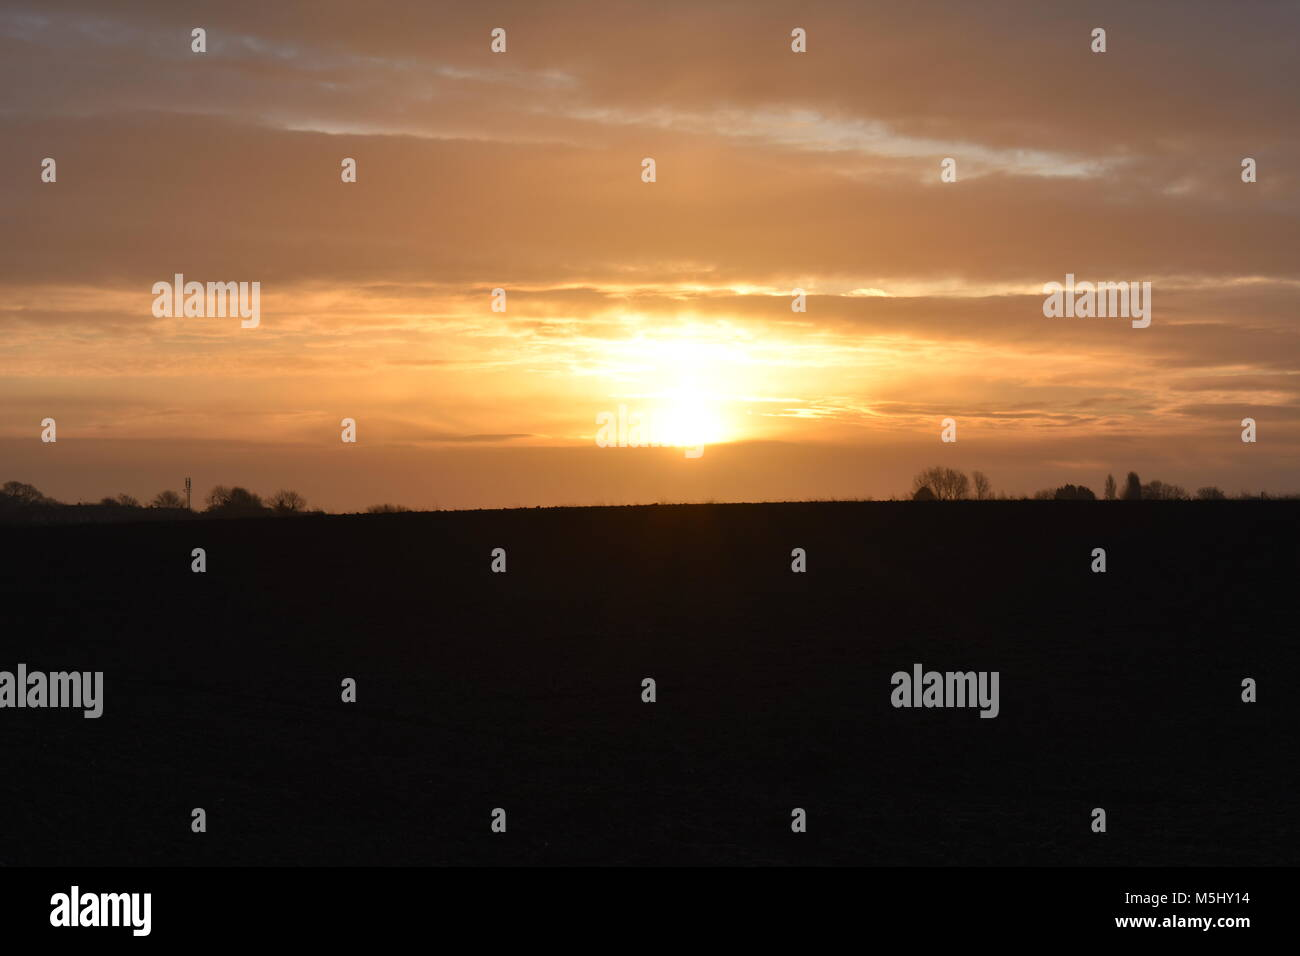 Sun Rise in British country side - Stock Image